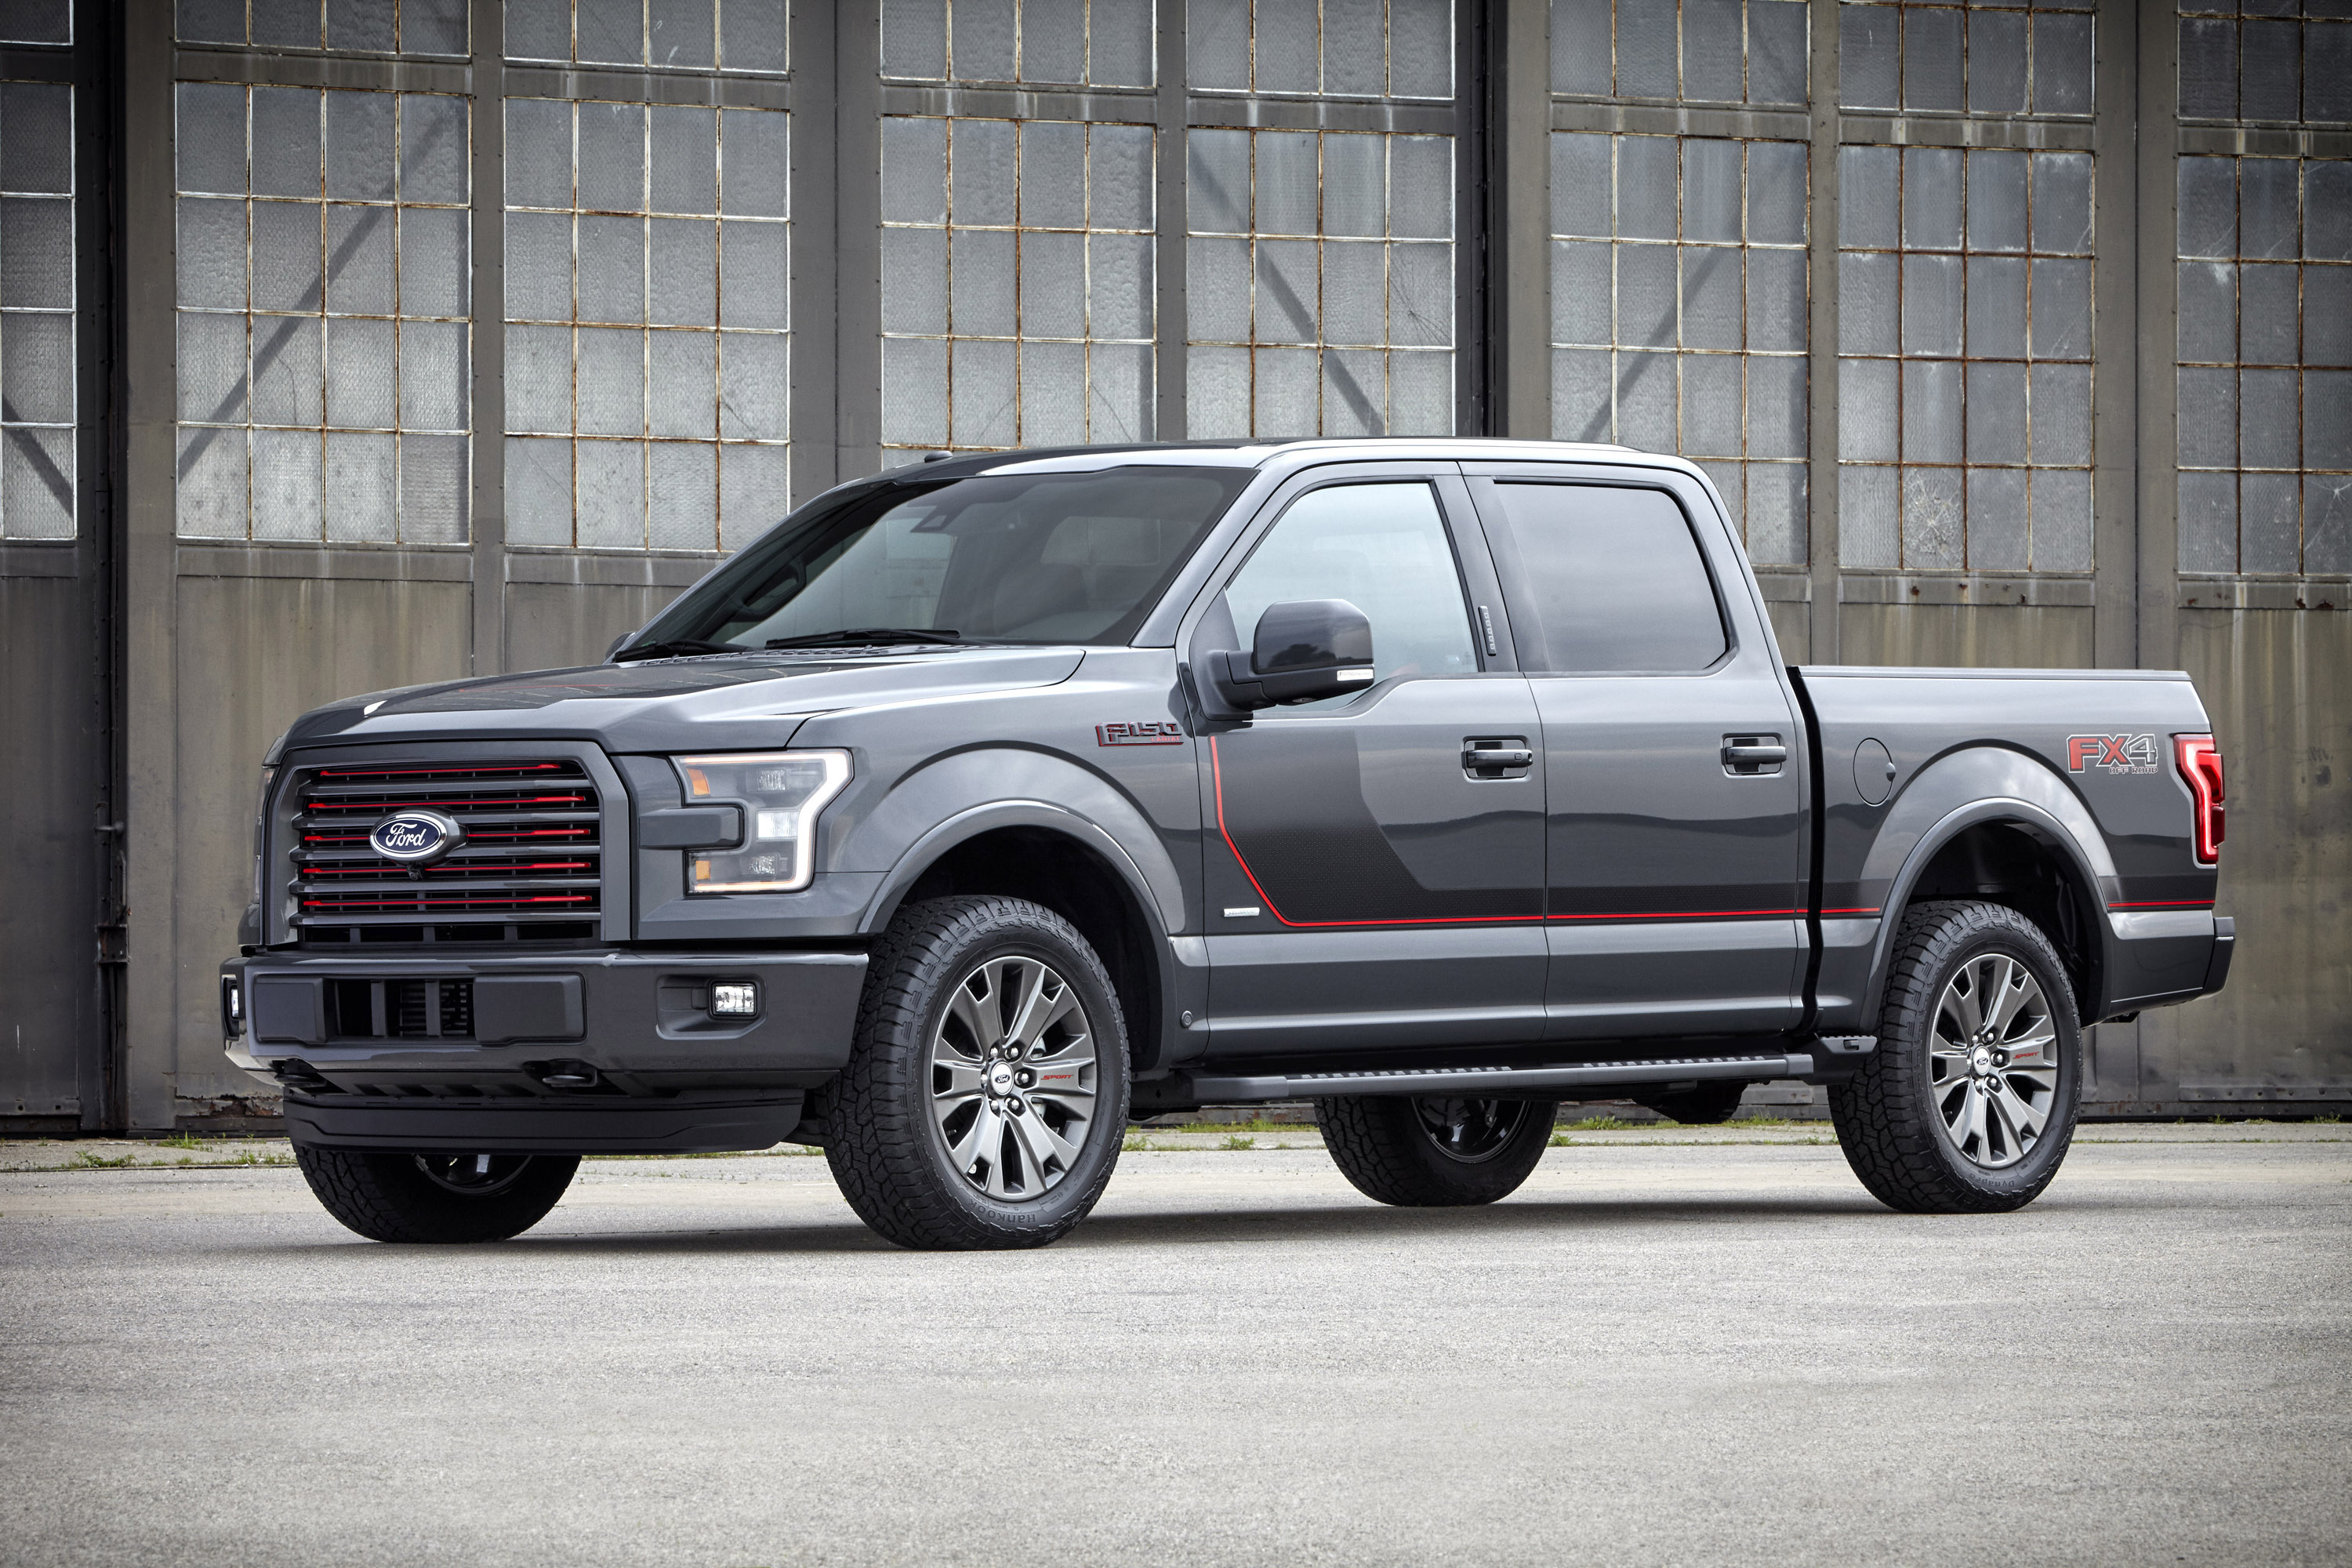 2016 ford f 150 lariat appearance package hd pictures. Black Bedroom Furniture Sets. Home Design Ideas